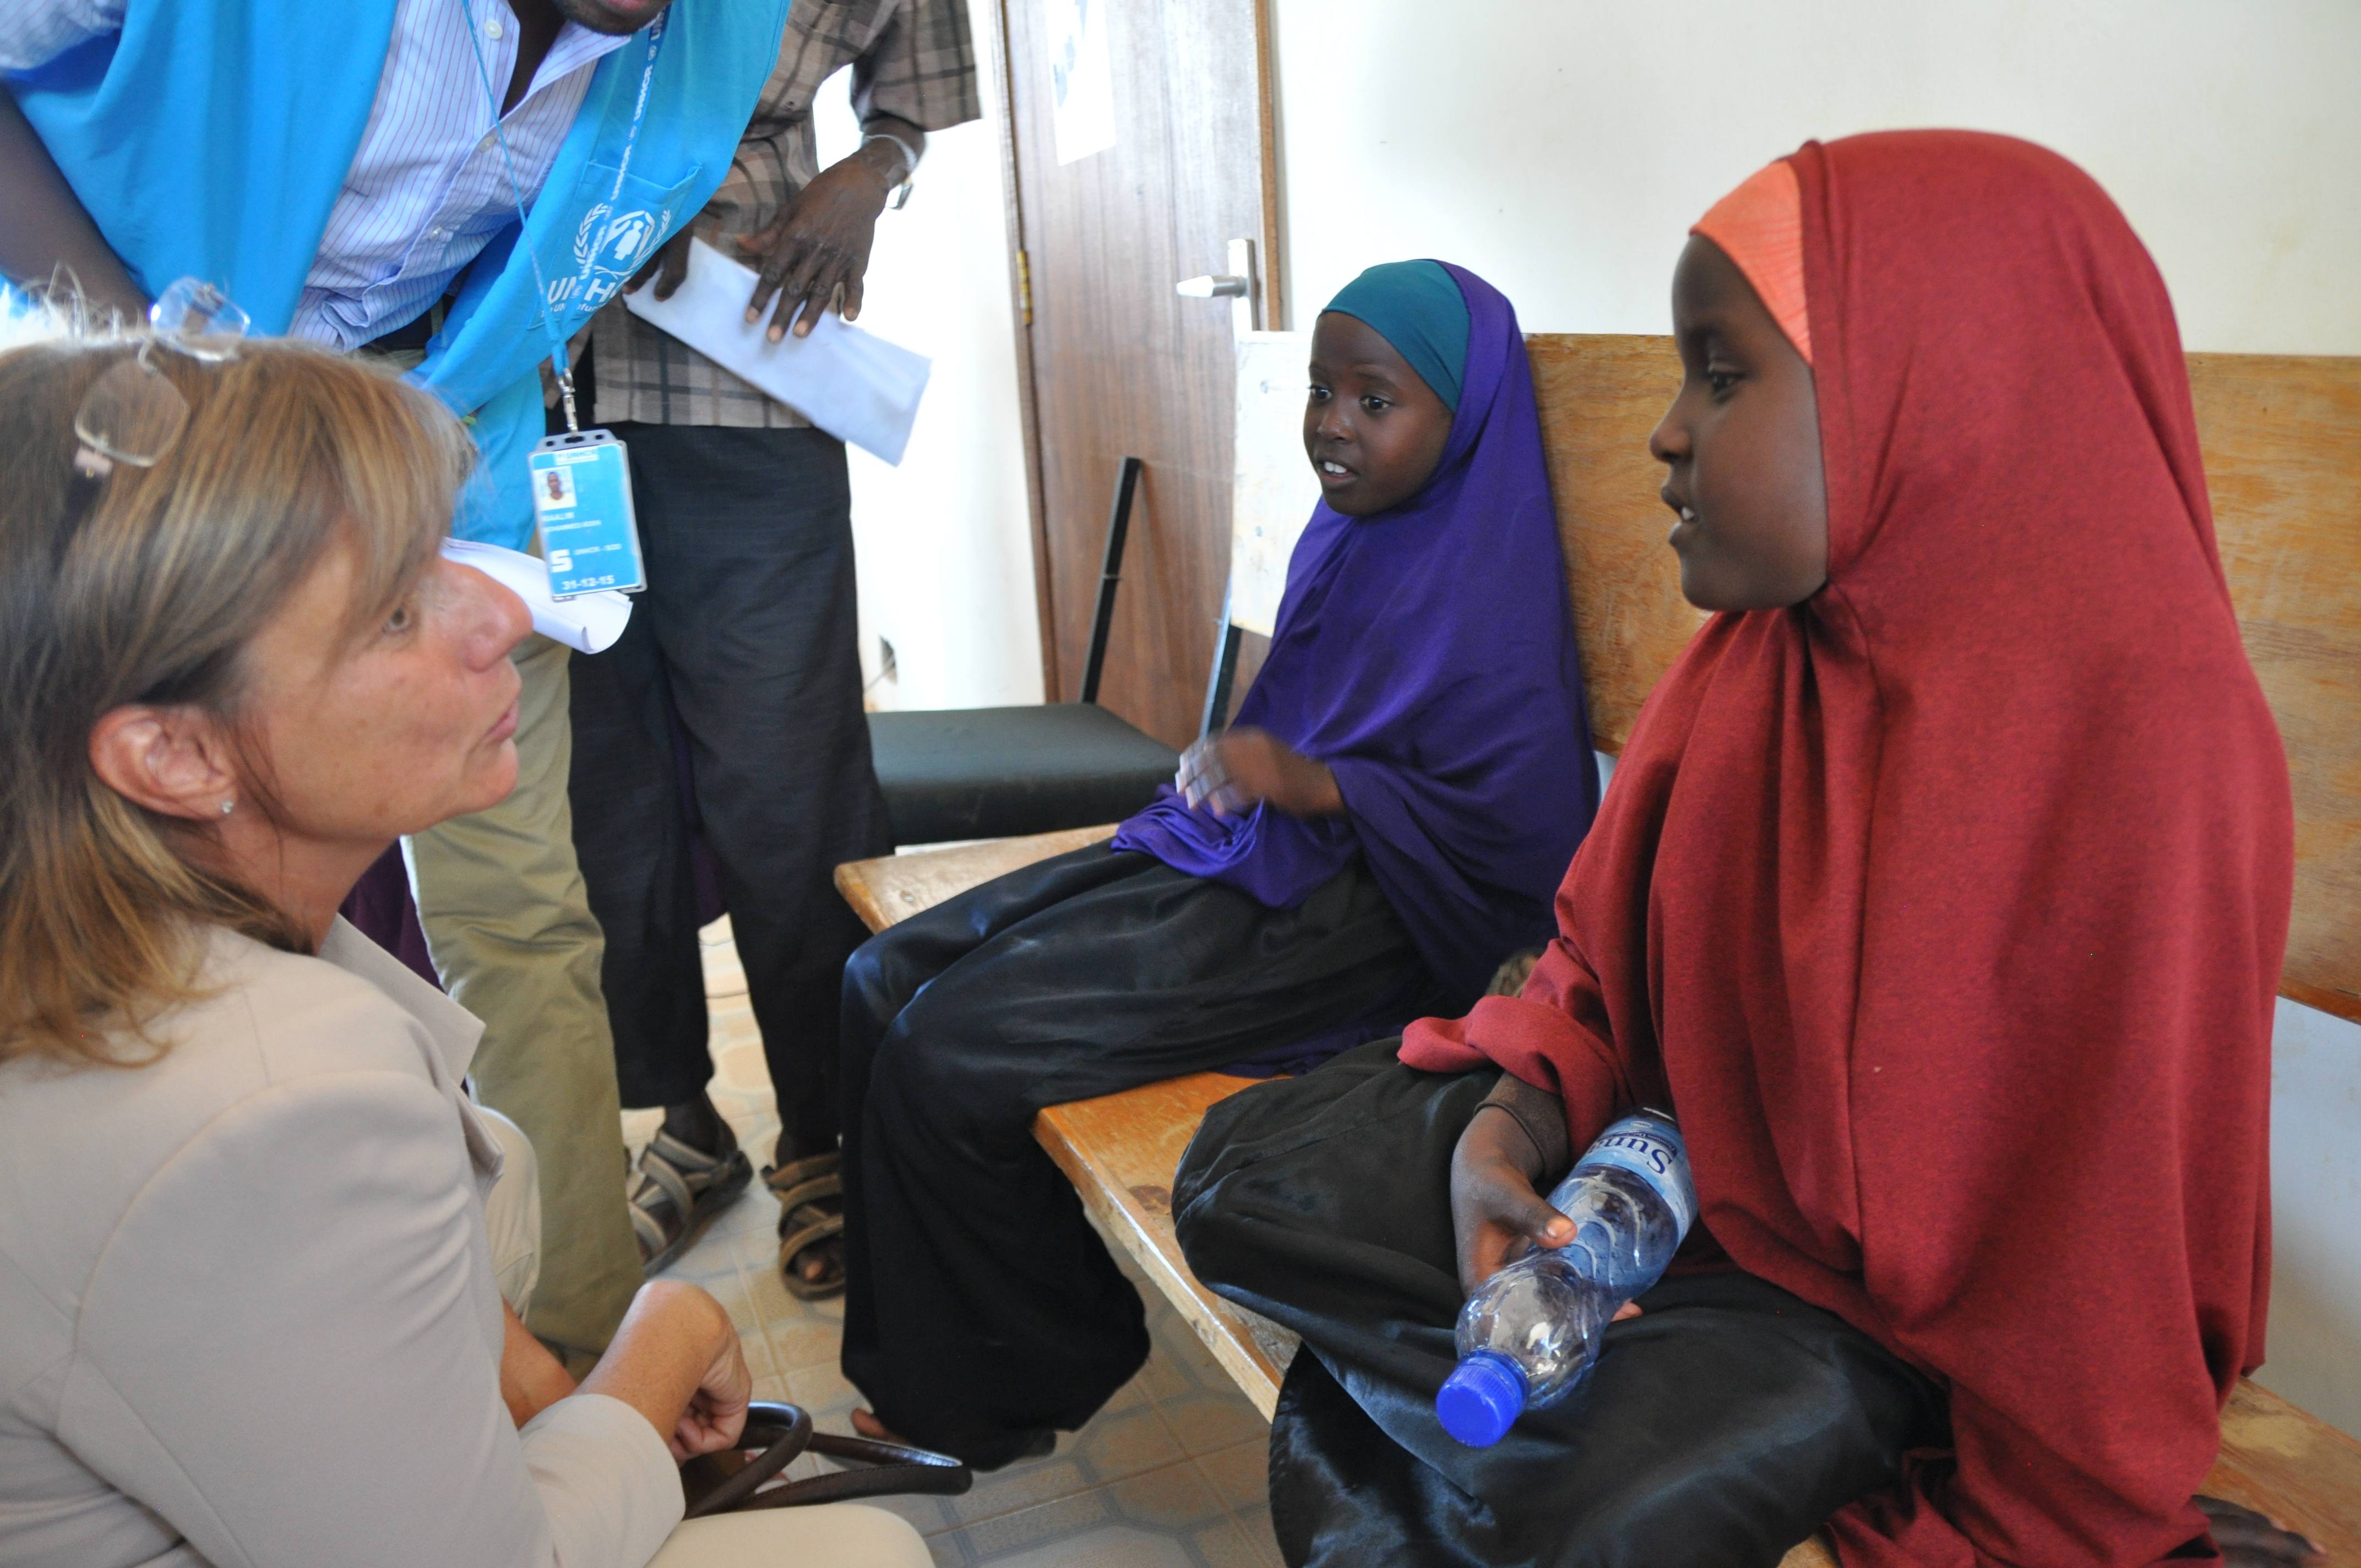 Isabella Lövin, Minister for International Development Cooperation and Climate, in the Dadaab refugee camp in Kenya.